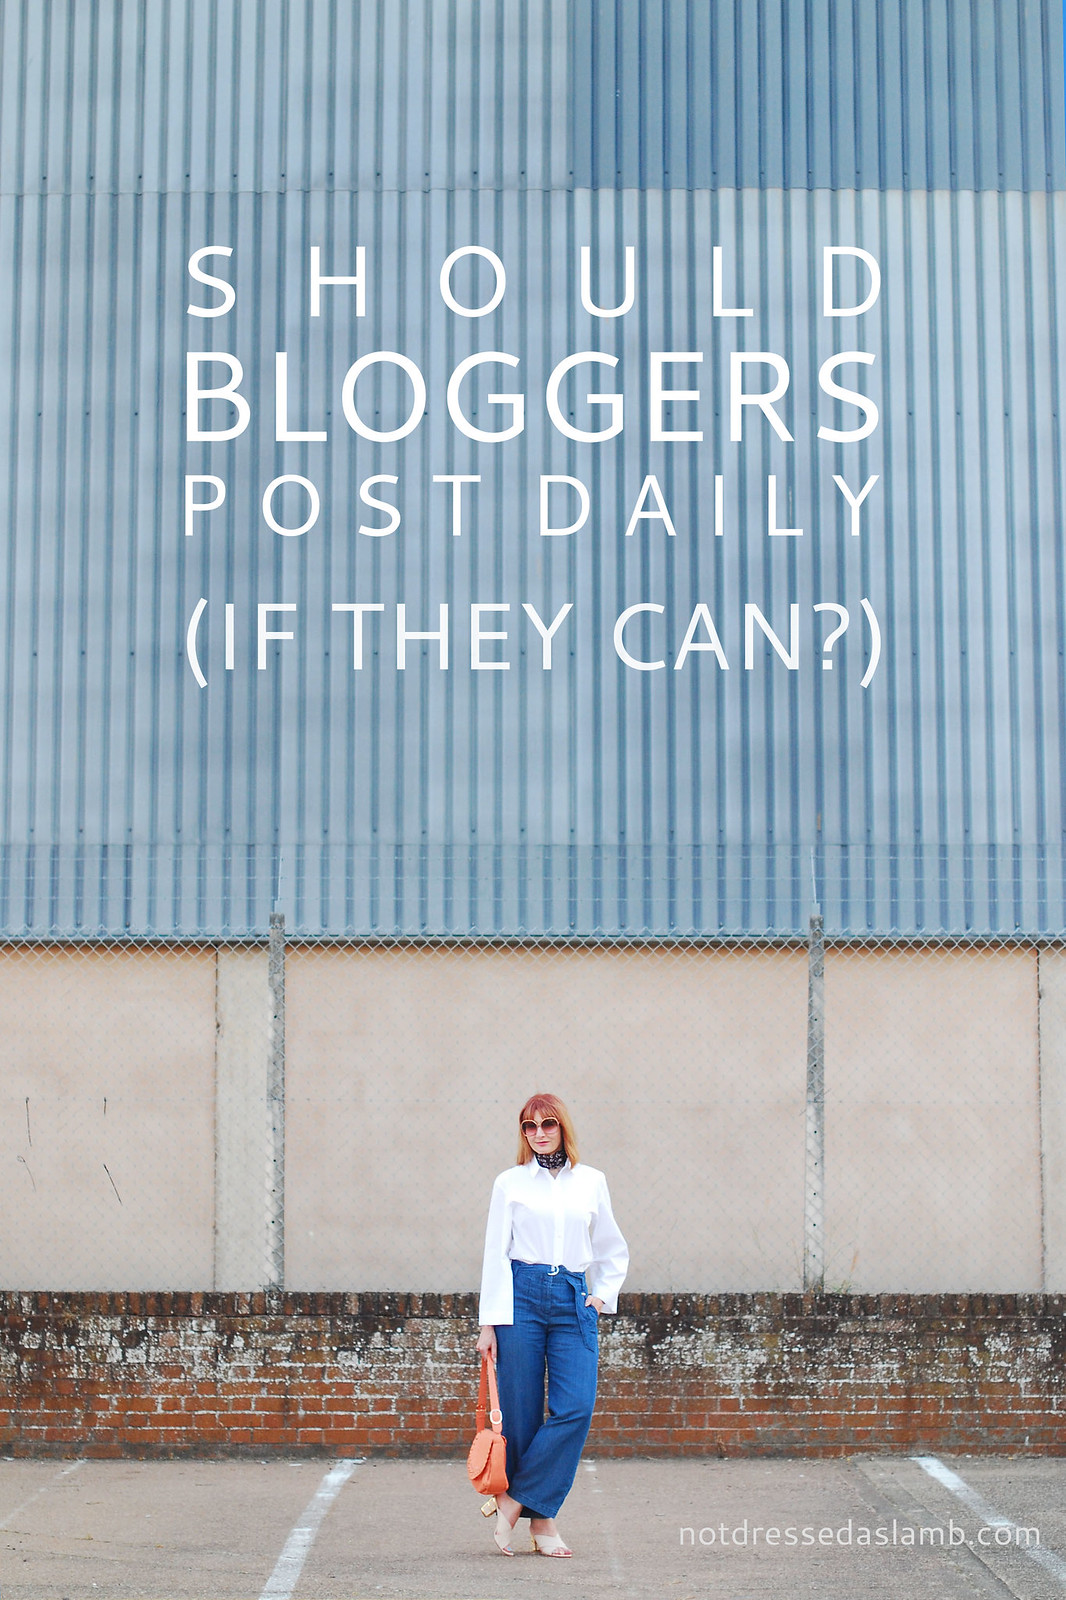 Should Bloggers Post Every Day If They Can? | Not Dressed As Lamb, over 40 style blogger, muses on daily posting